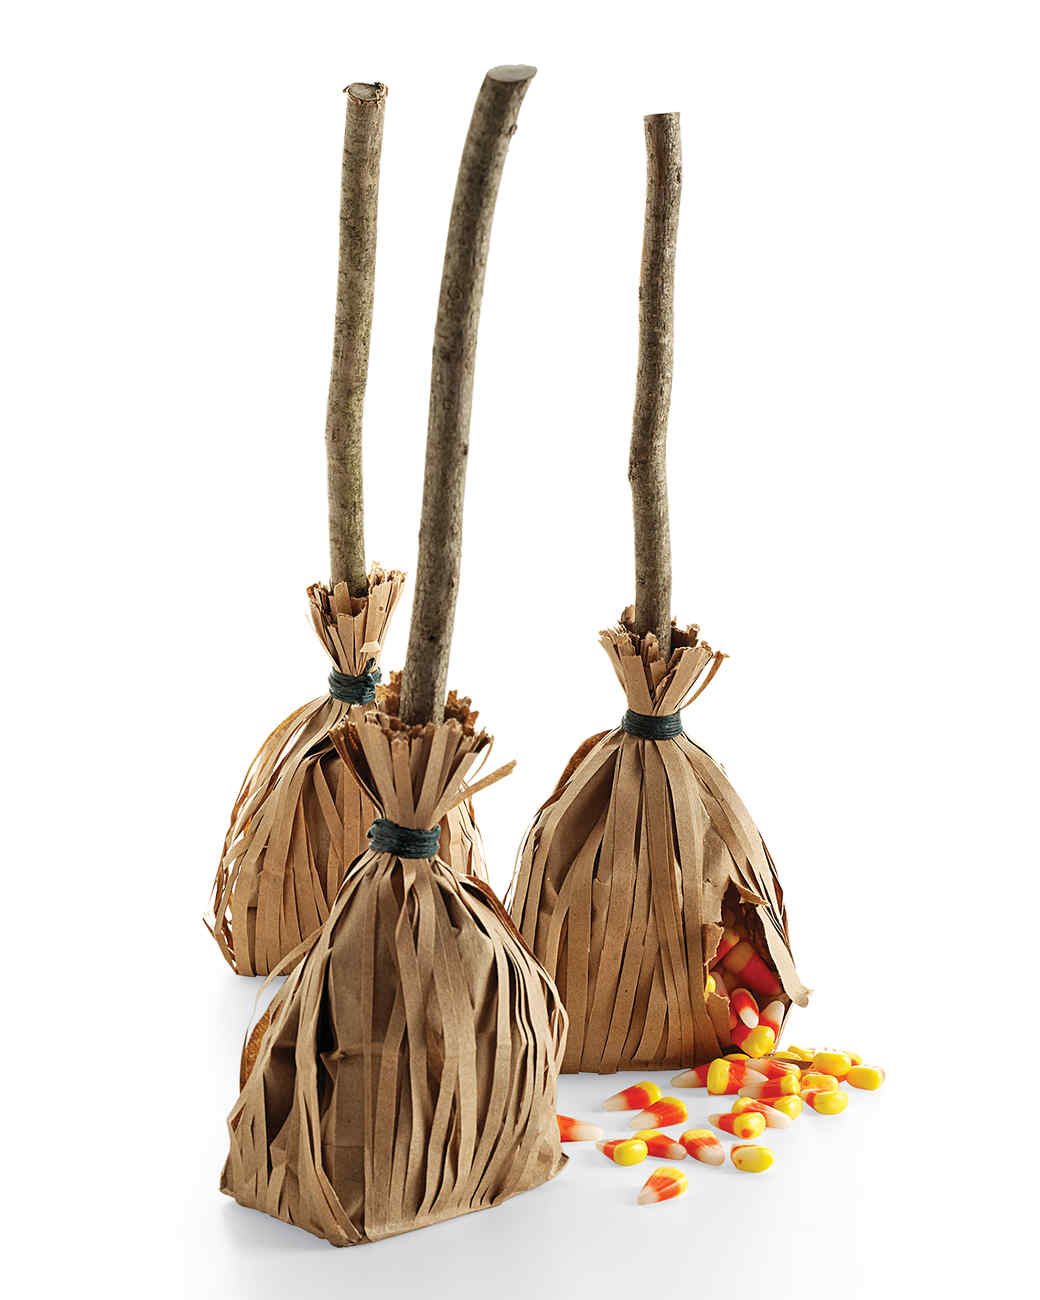 Halloween Broom Candy Bags How-to